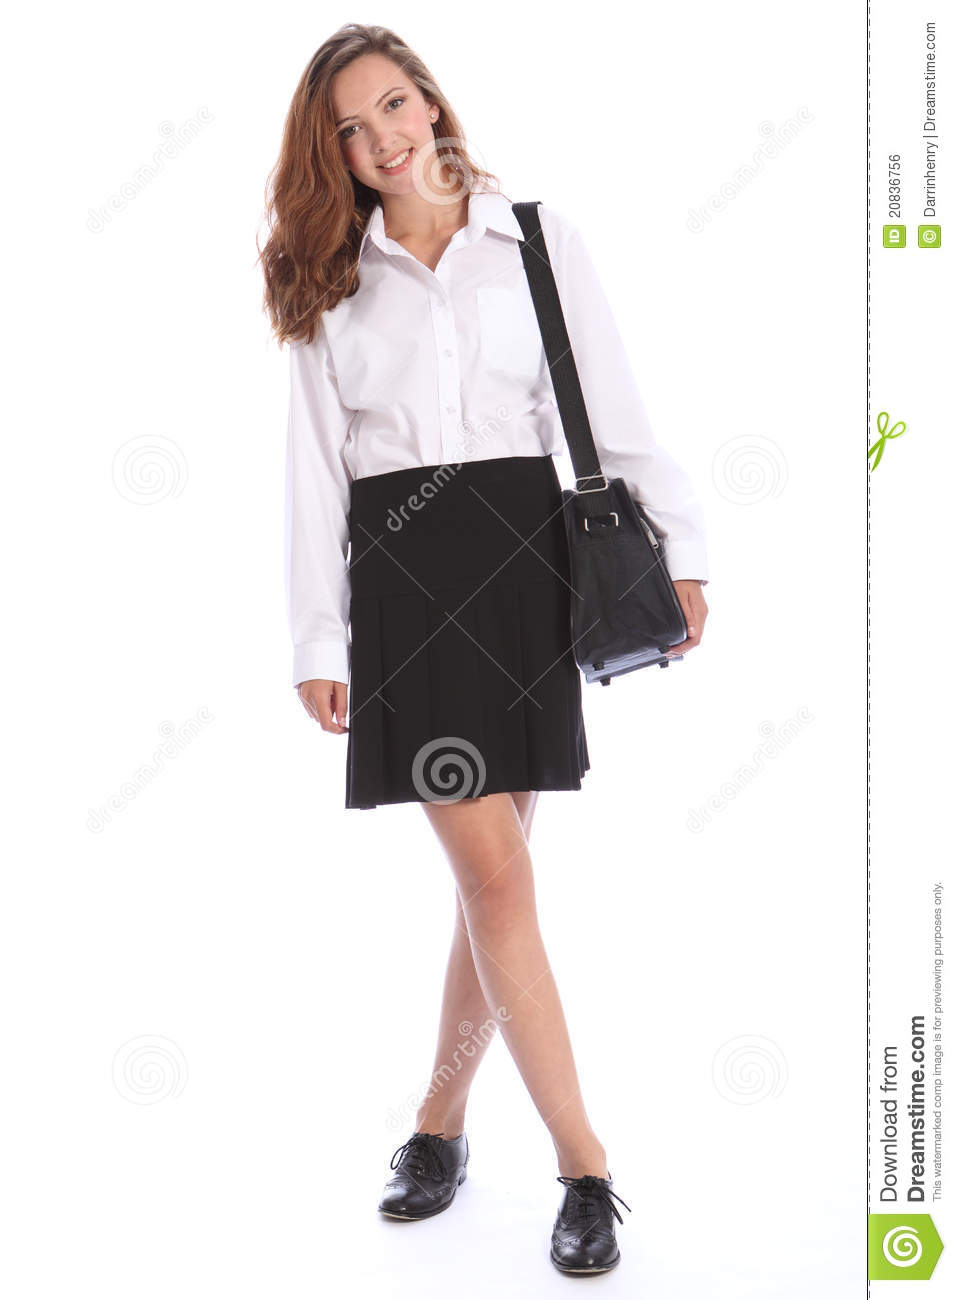 b3f314e6a Happy smile from beautiful teenage secondary school student girl wearing  black and white school uniform, bag over her shoulder.